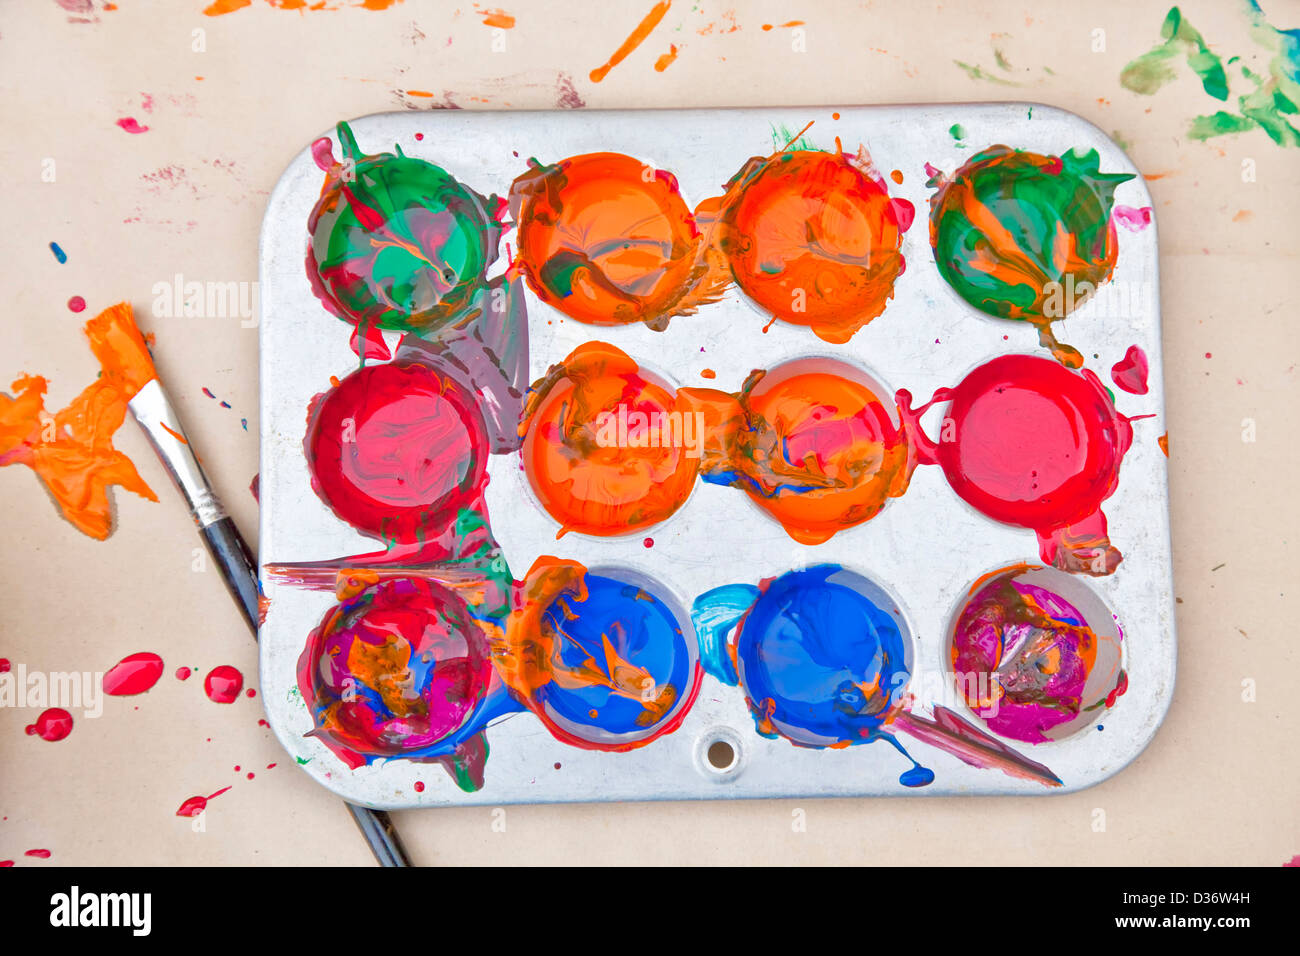 Messy array of colors of children's paint in a tray with a paint brush. - Stock Image